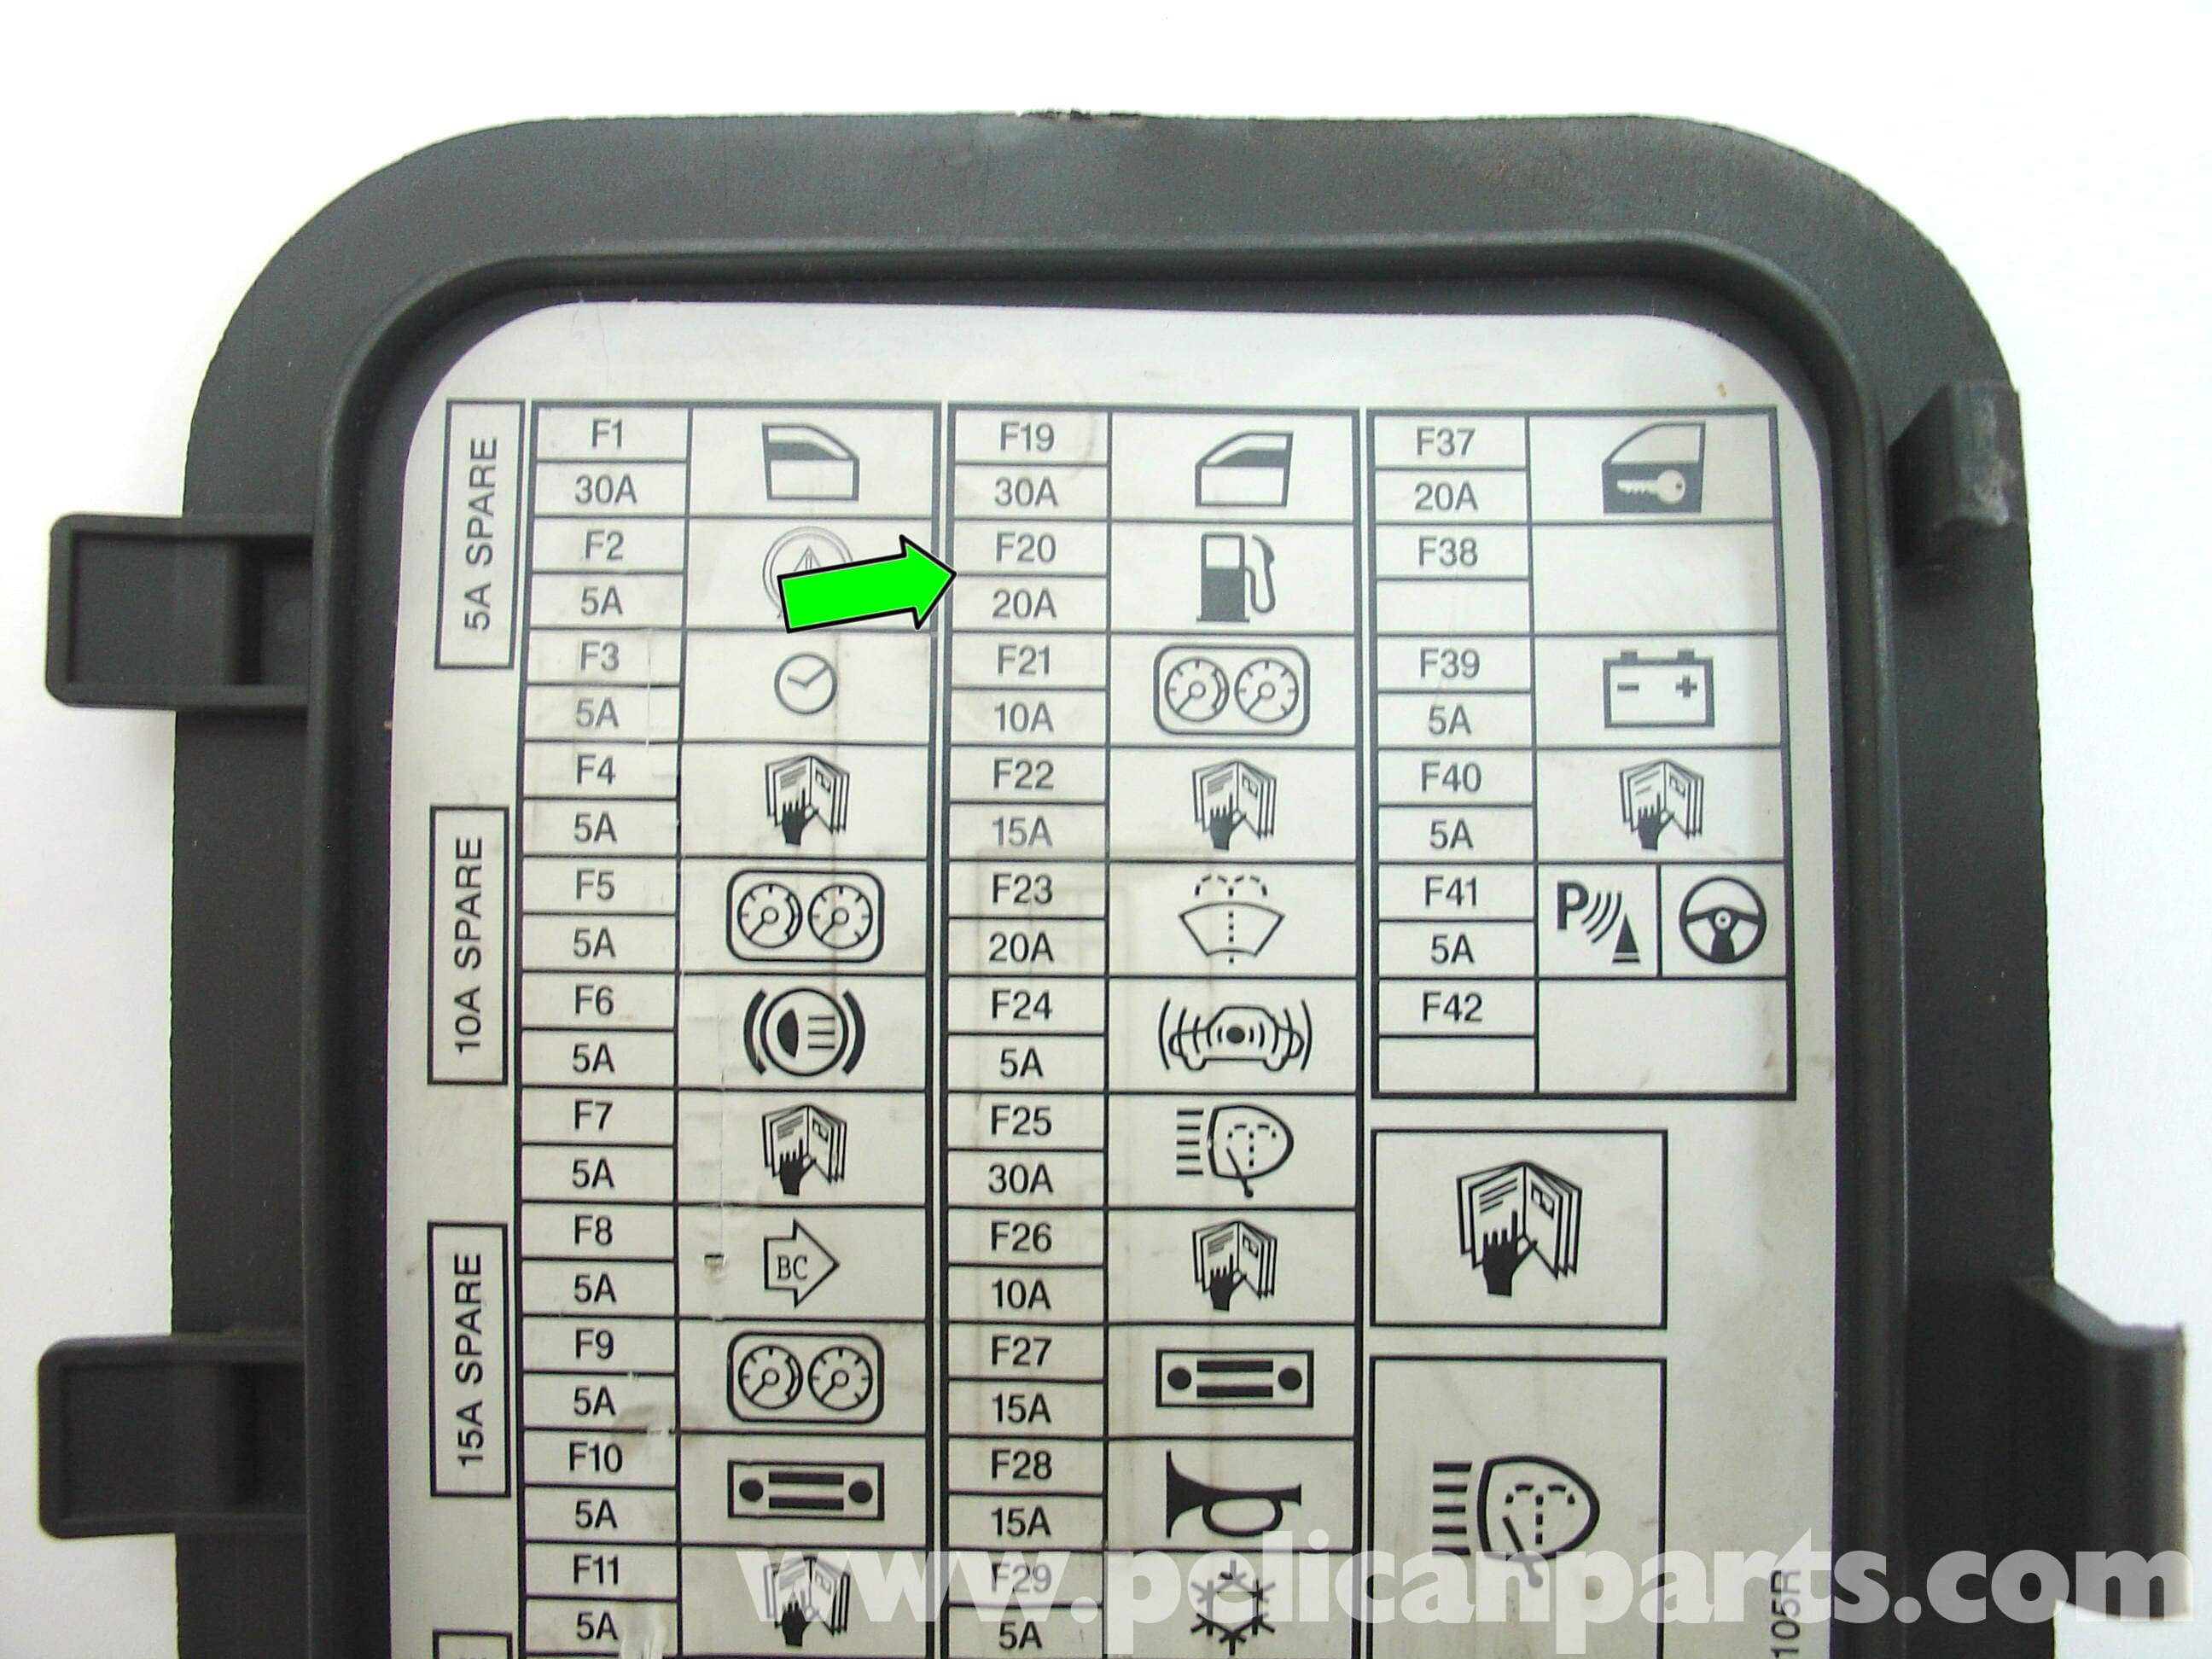 2002 Mini Cooper Fuse Box Simple Wiring Diagram Hard Drive Layout Data Jeep Grand Cherokee Laredo